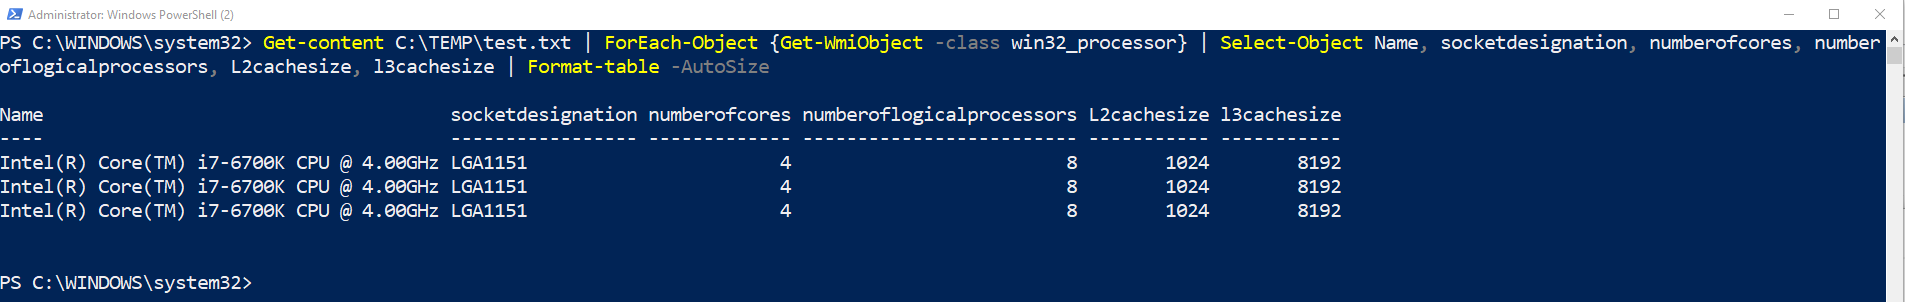 win32_processor expanded